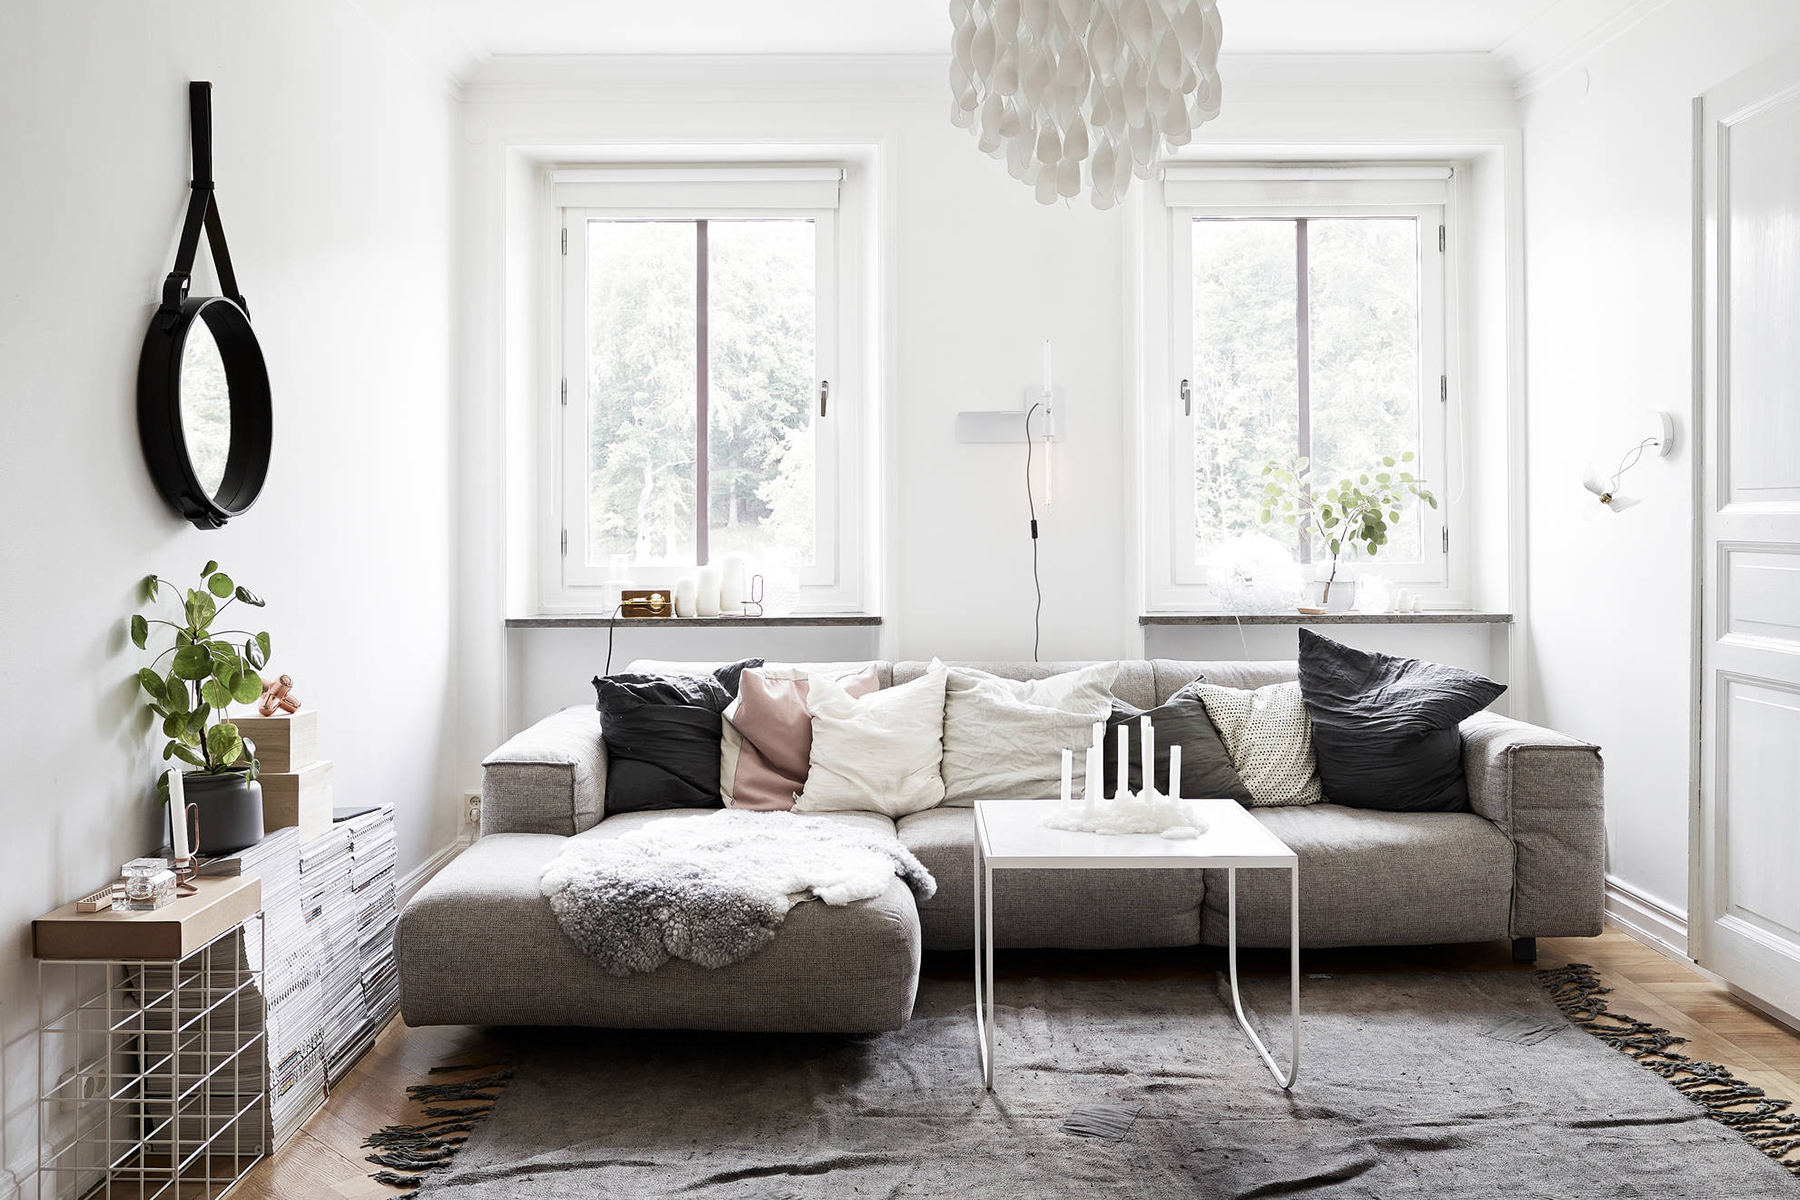 Scandinavian living room textiles - Top 10 tips for adding Scandinavian style to your home | Happy Grey Lucky